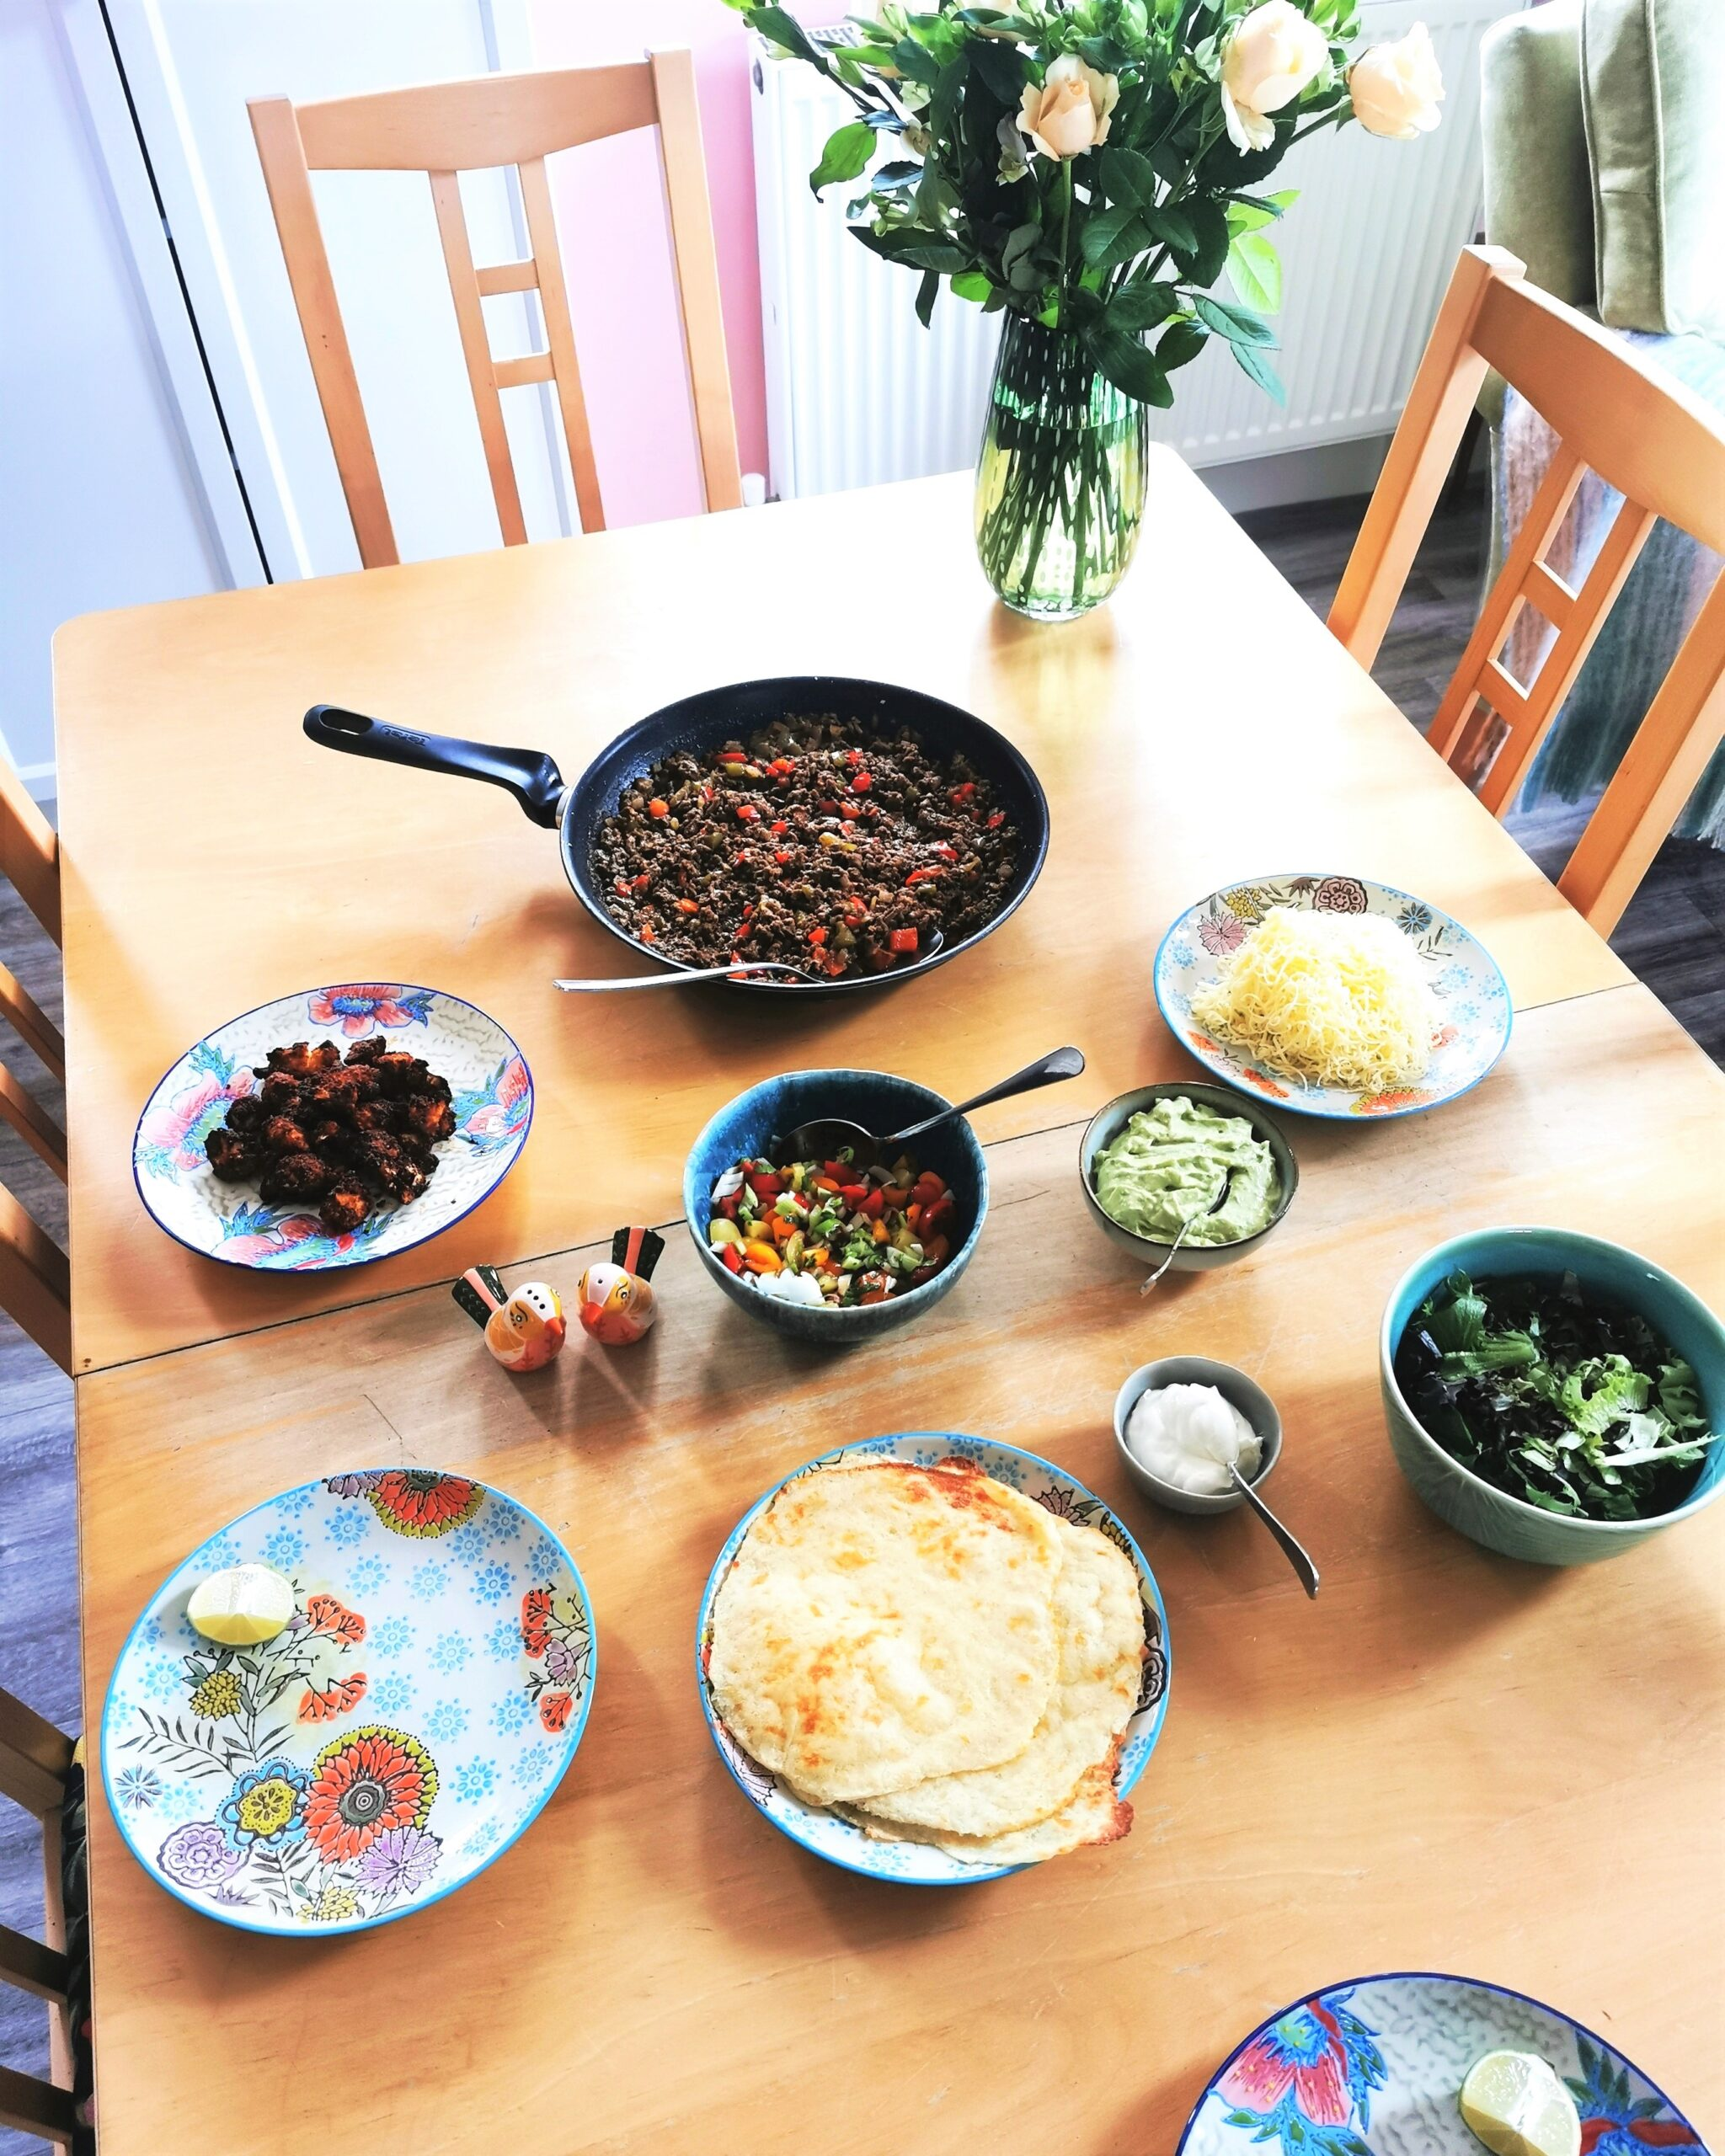 A wooden table laid with colourful plates, a pan of mexican meat, guacamole, creme fraiche, grated cheese, salsa, roasted cauliflower and salad. There is also a vase with flowers.